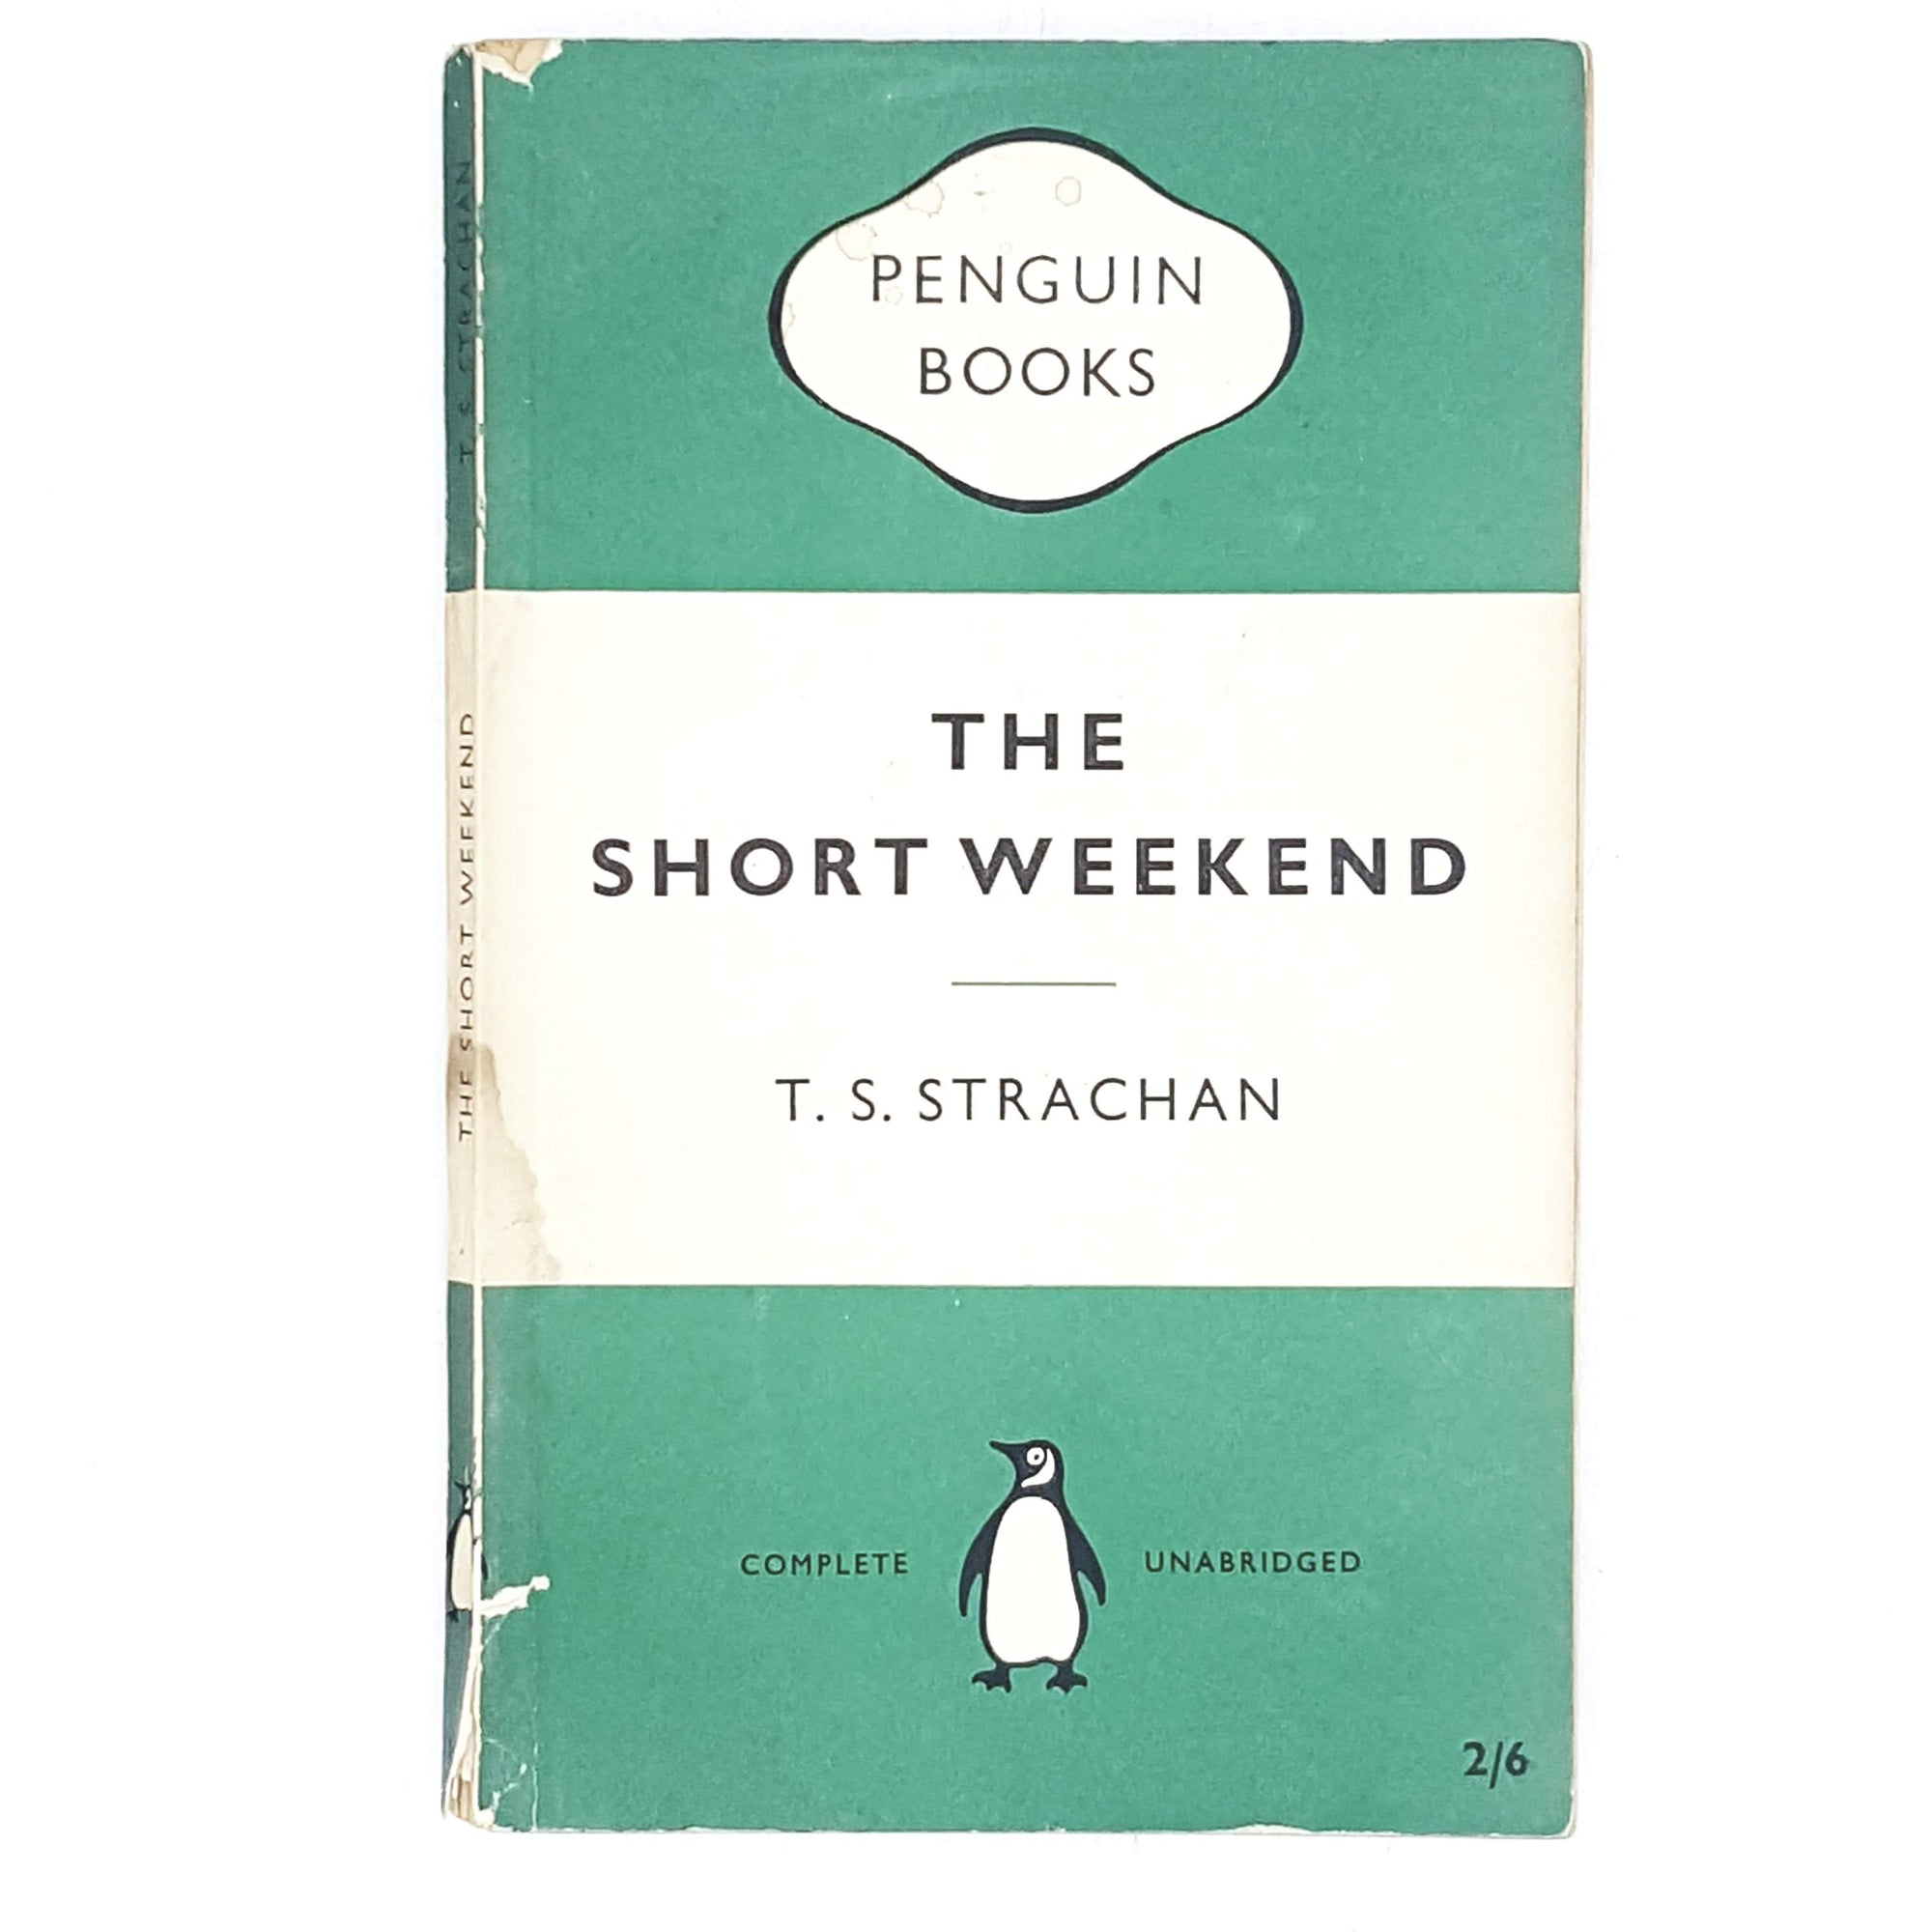 First Edition Penguin The Short Weekend by T. S. Strachan 1956